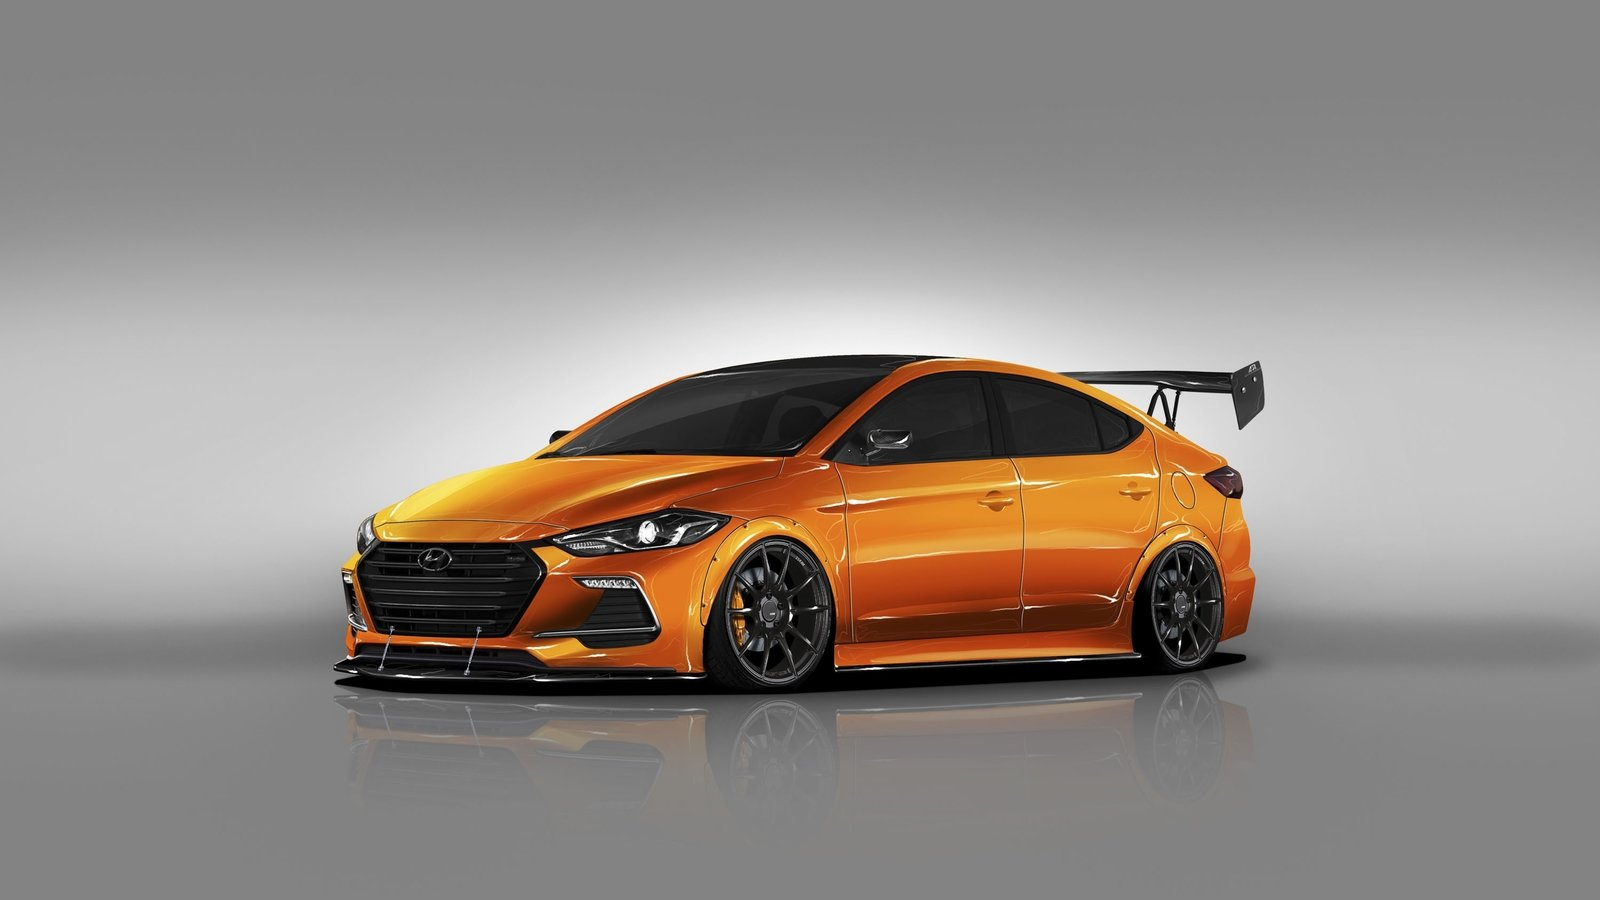 2017 hyundai btr edition elantra sport concept pictures. Black Bedroom Furniture Sets. Home Design Ideas